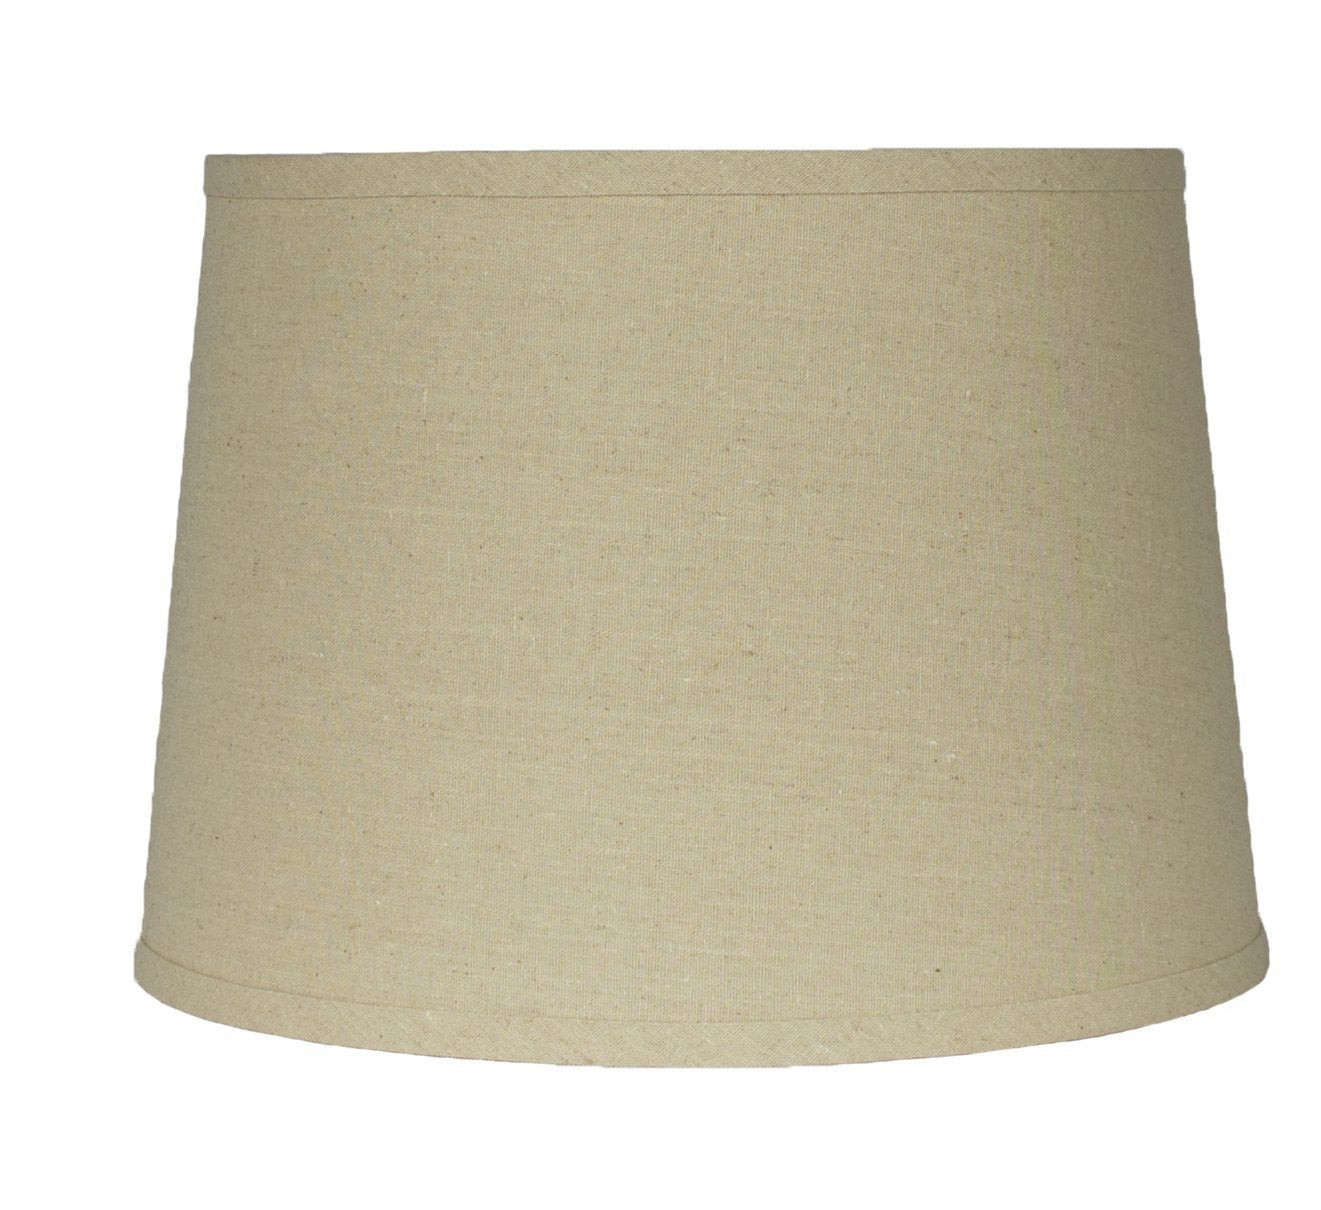 French Drum Lampshade Linen, 12-inch